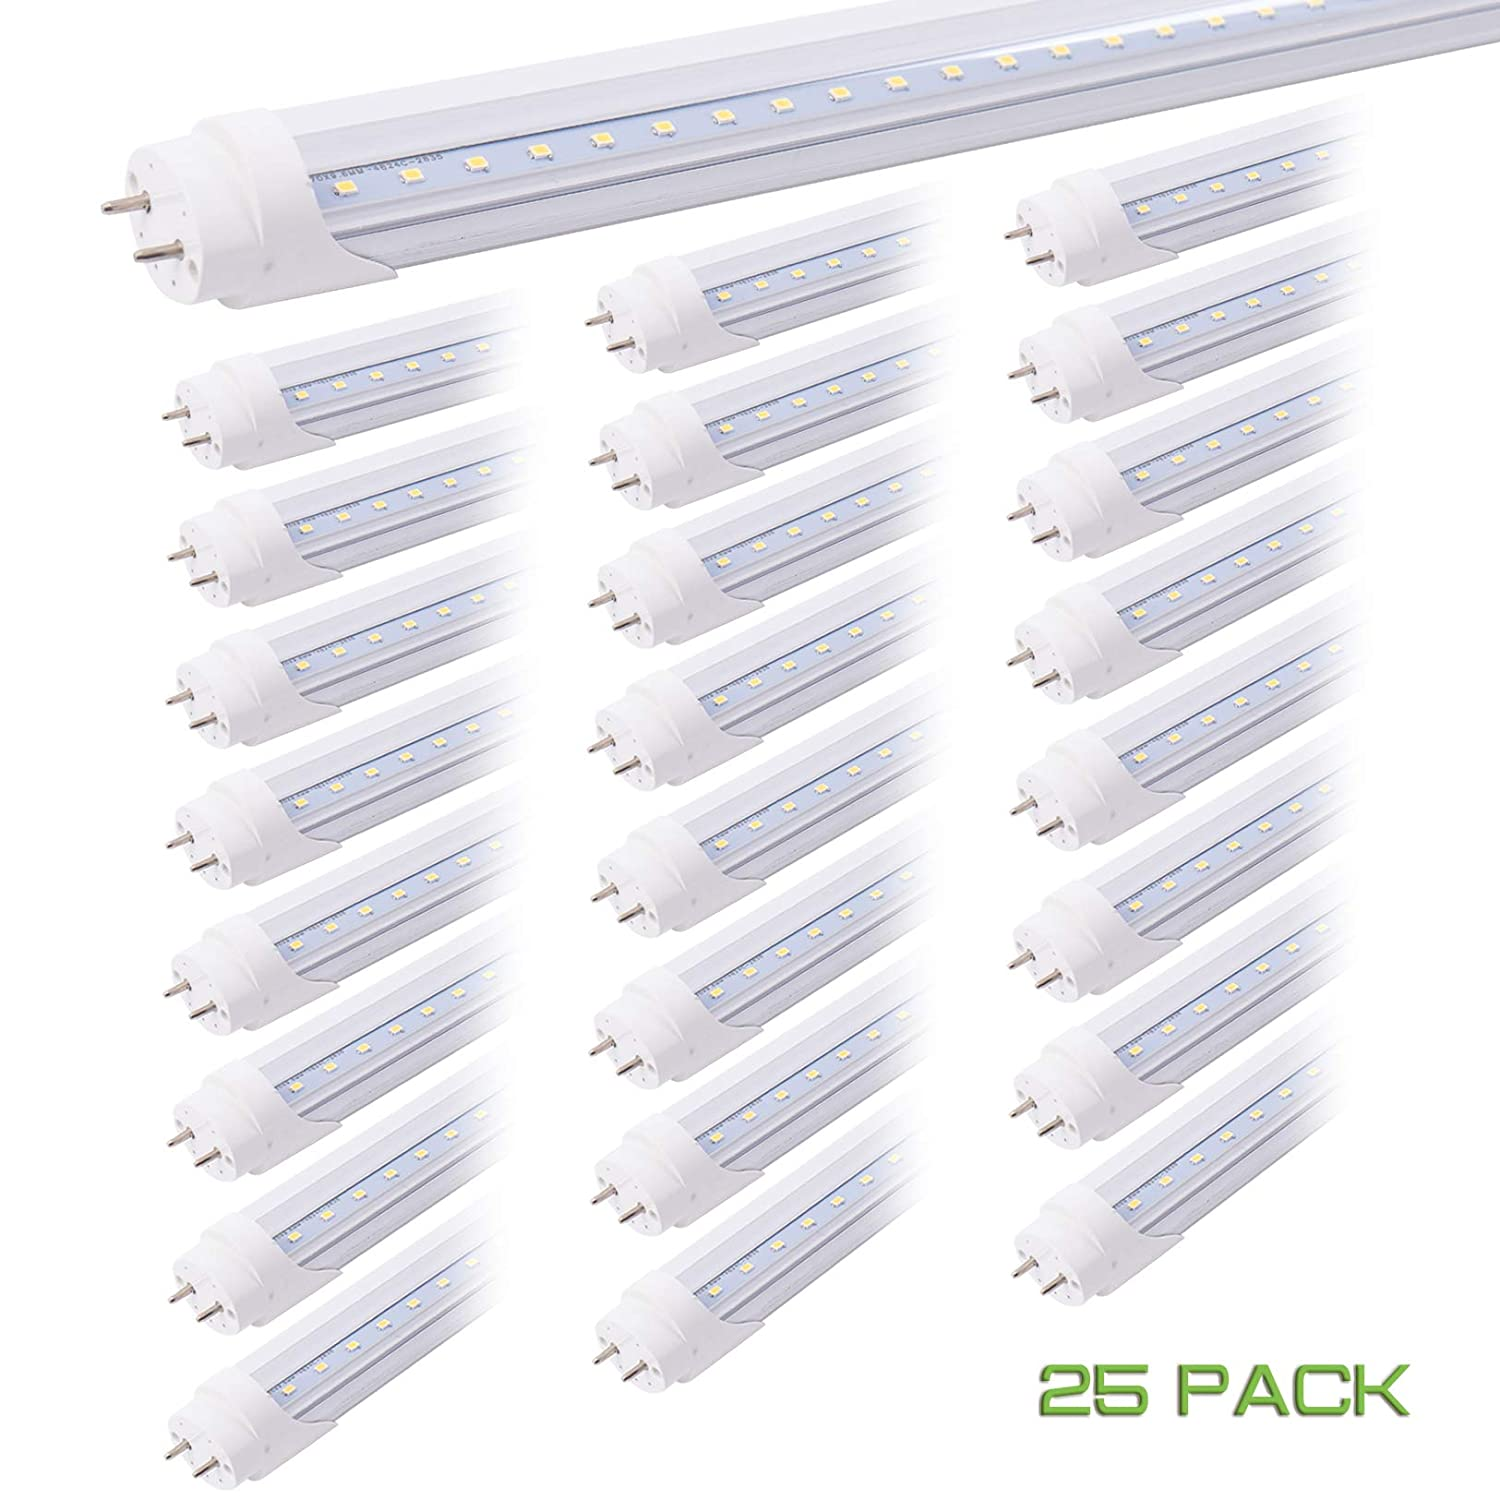 15 Pack T8 4FT 20W LED Tube Light,G13 Base,Clear Cover,Daylight White 6500K,Ballast Bypass,T12 4 Foot Indoor Bulb Light Fixture for Warehouse,Garage,Replacement for Flourescent Tubes,with UL Listed